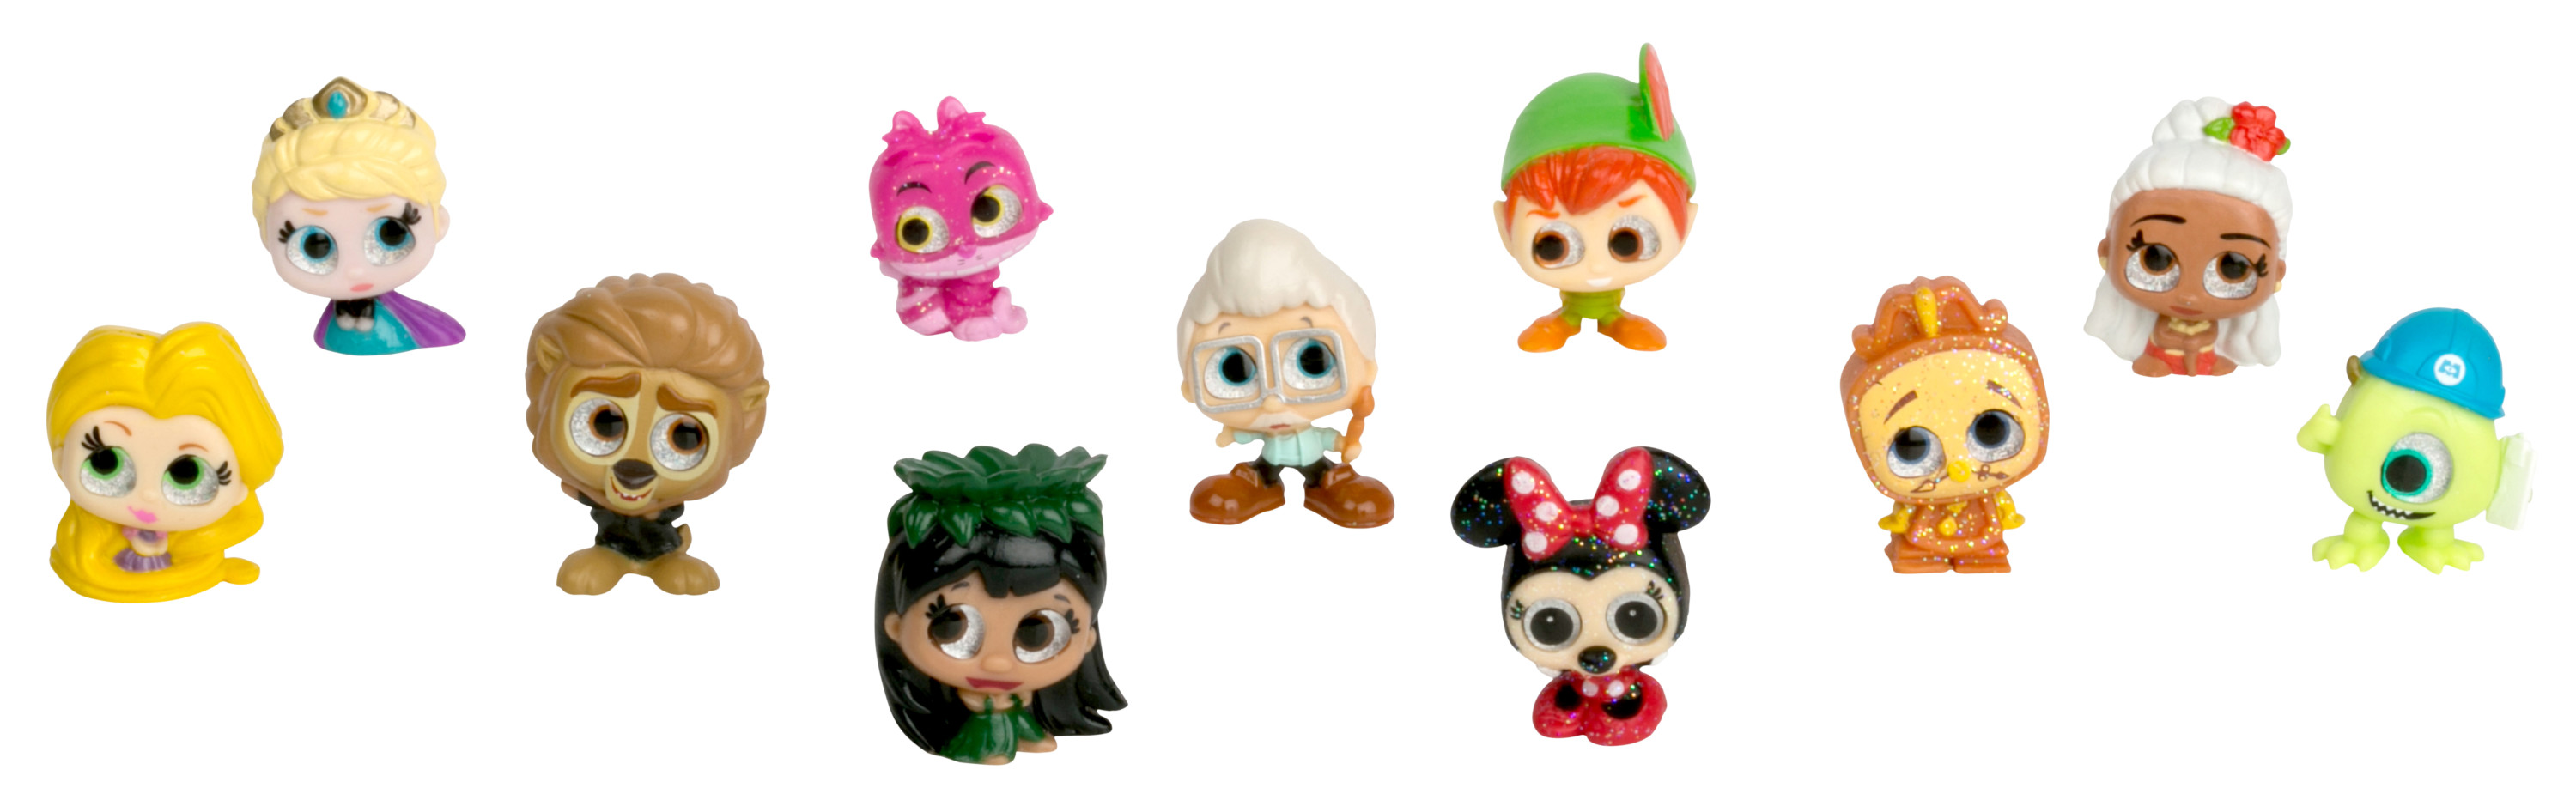 Disney Doorables Multi Peek by Moose Toys